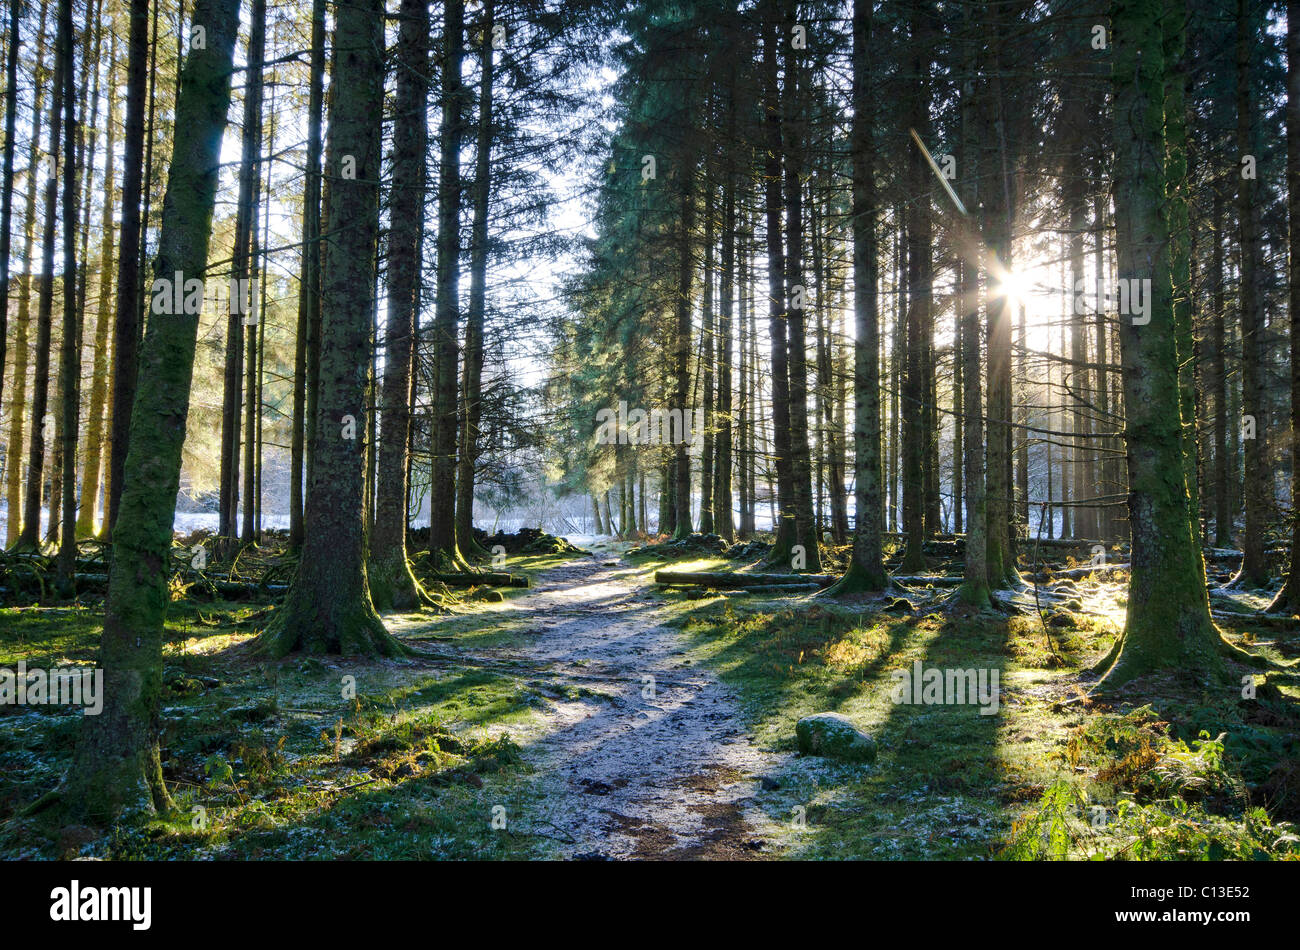 Sun streaming through mature conifer plantation in frosty conditions - Stock Image